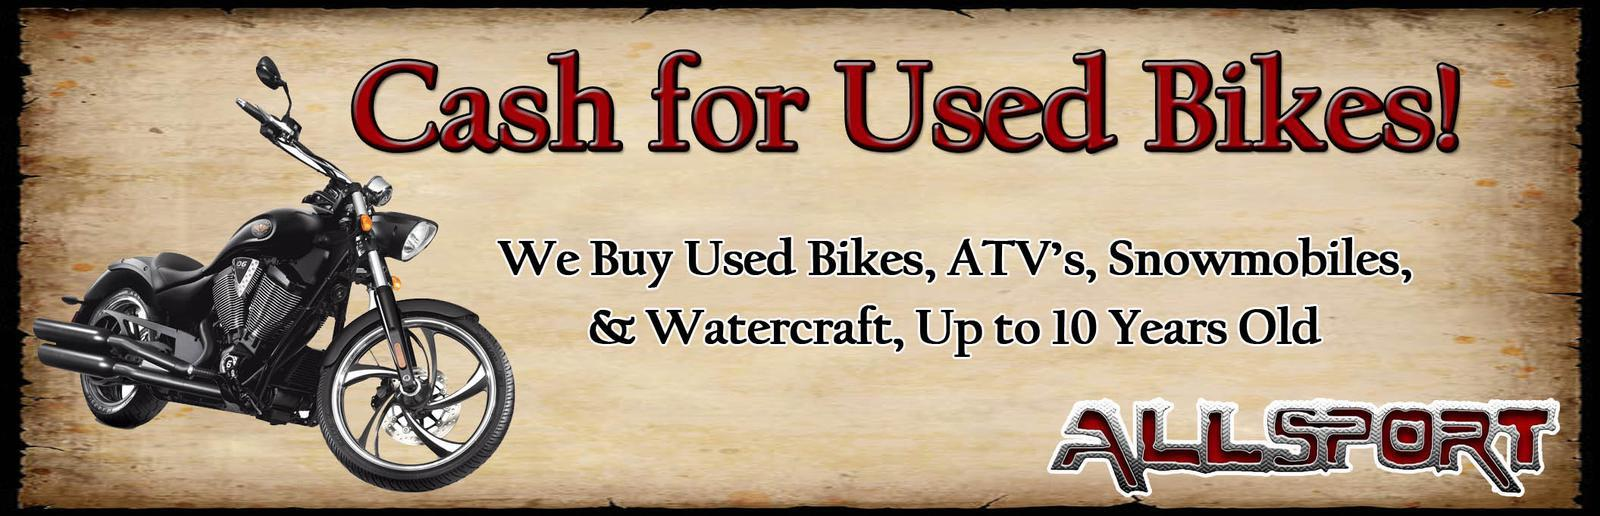 Cash for Used Bikes, ATV's, Snowmobiles & Watercraft - All Makes and Brands!